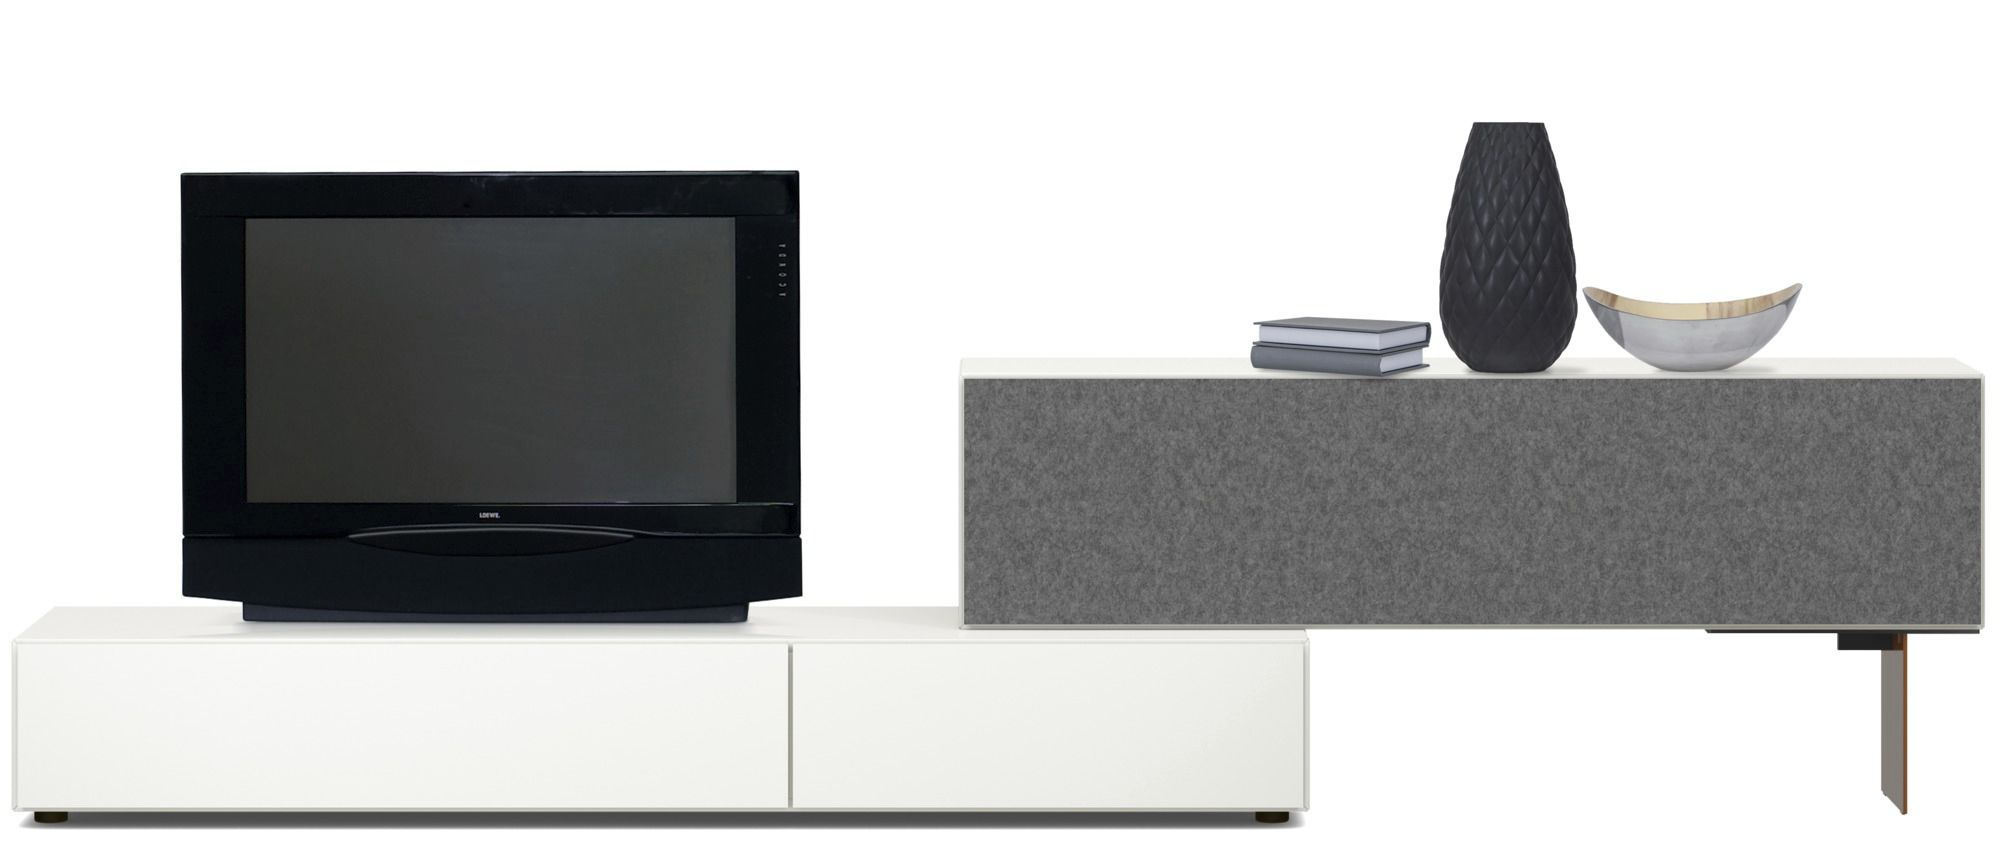 Meuble Tv Boconcept - Contemporary Tv Cabinet Hi Fi Glass Mdf Lugano Boconcept[mjhdah]http://www.teensanalyzed.us/img/41947/meuble-tv-fermo-boconcept.jpg